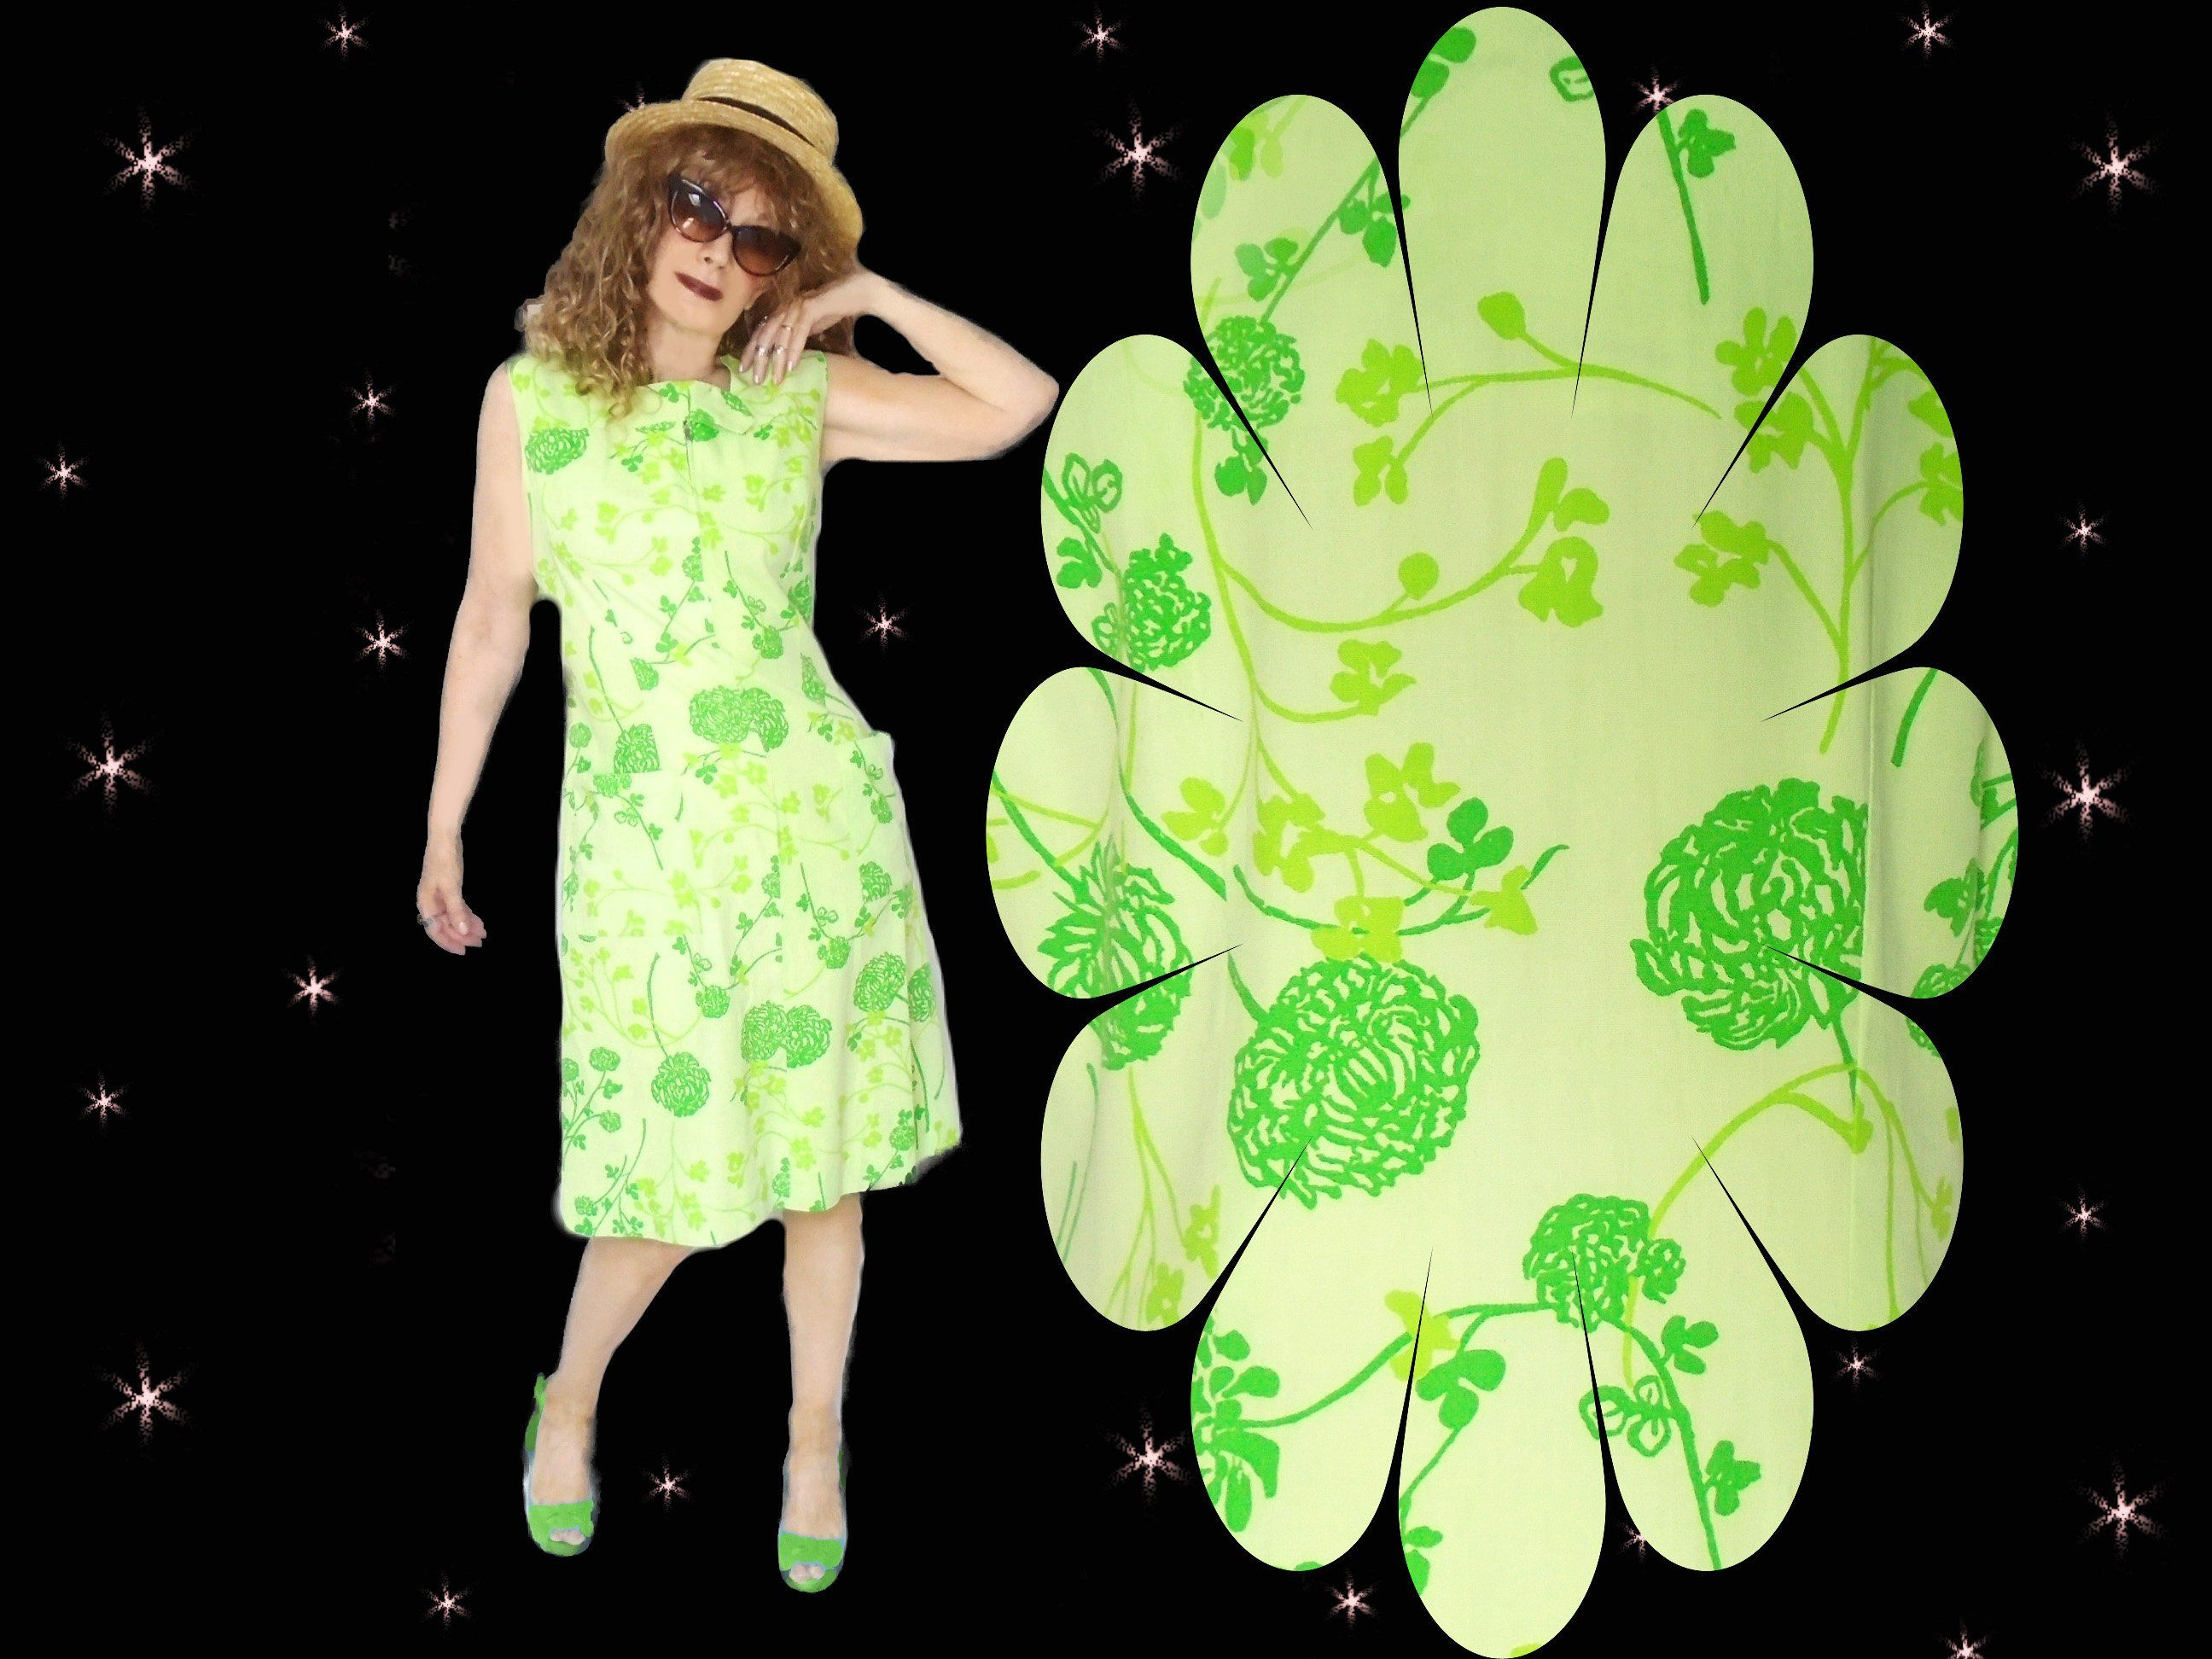 Mod dress plus size vintage summer psychedelic clothing s neon